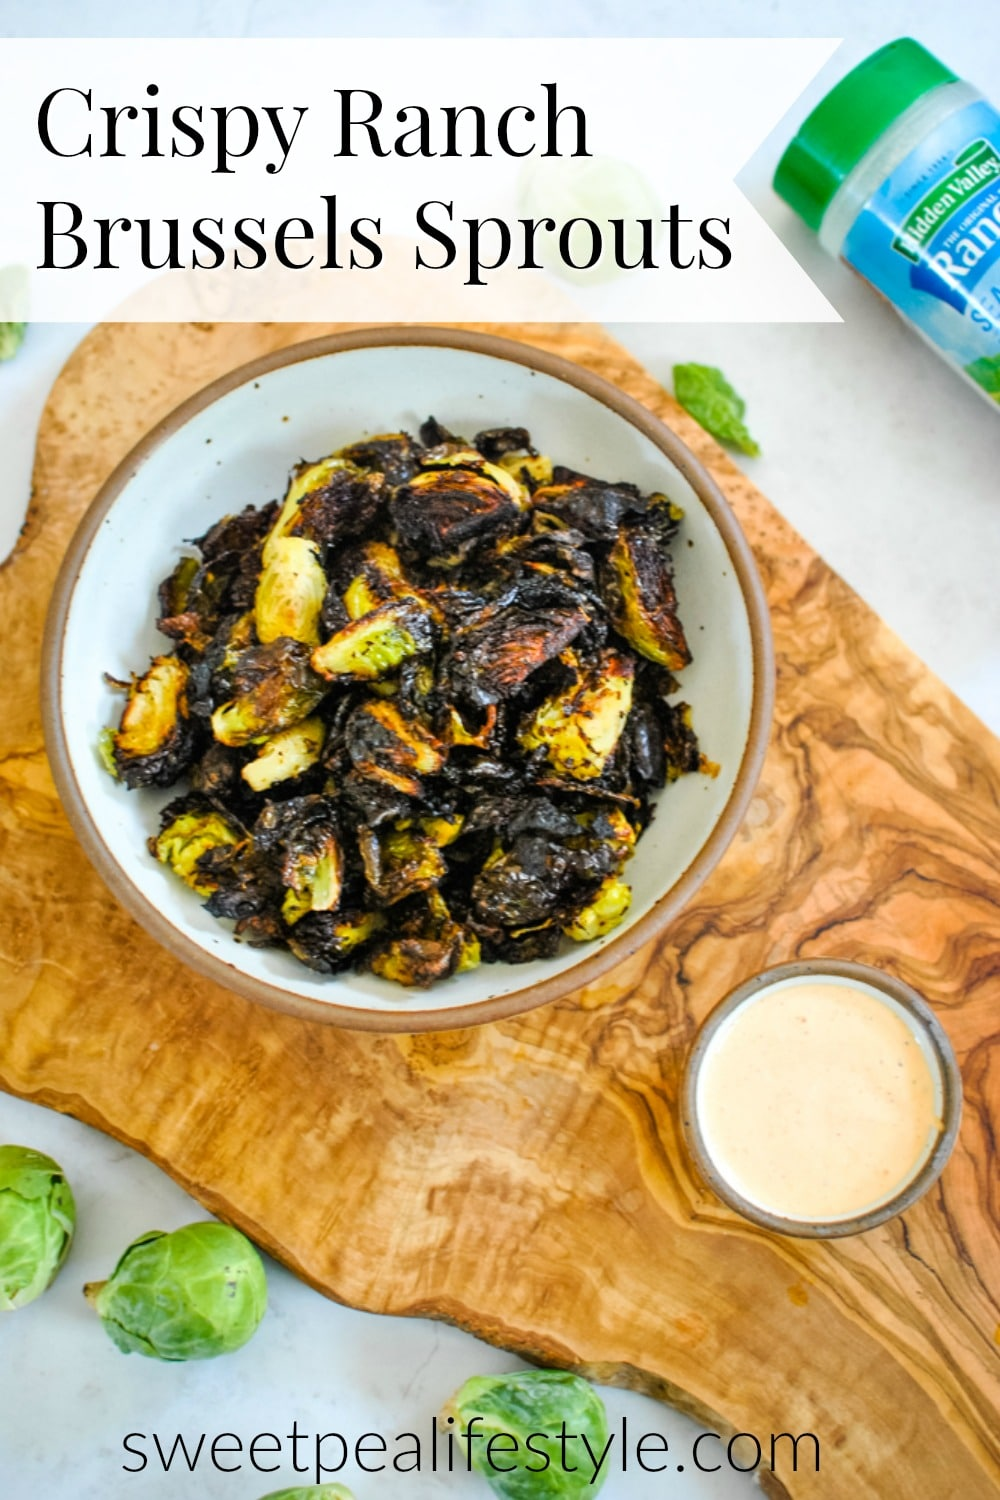 Crispy Ranch Brussel Sprouts Recipe from Sweetpea Lifestyle